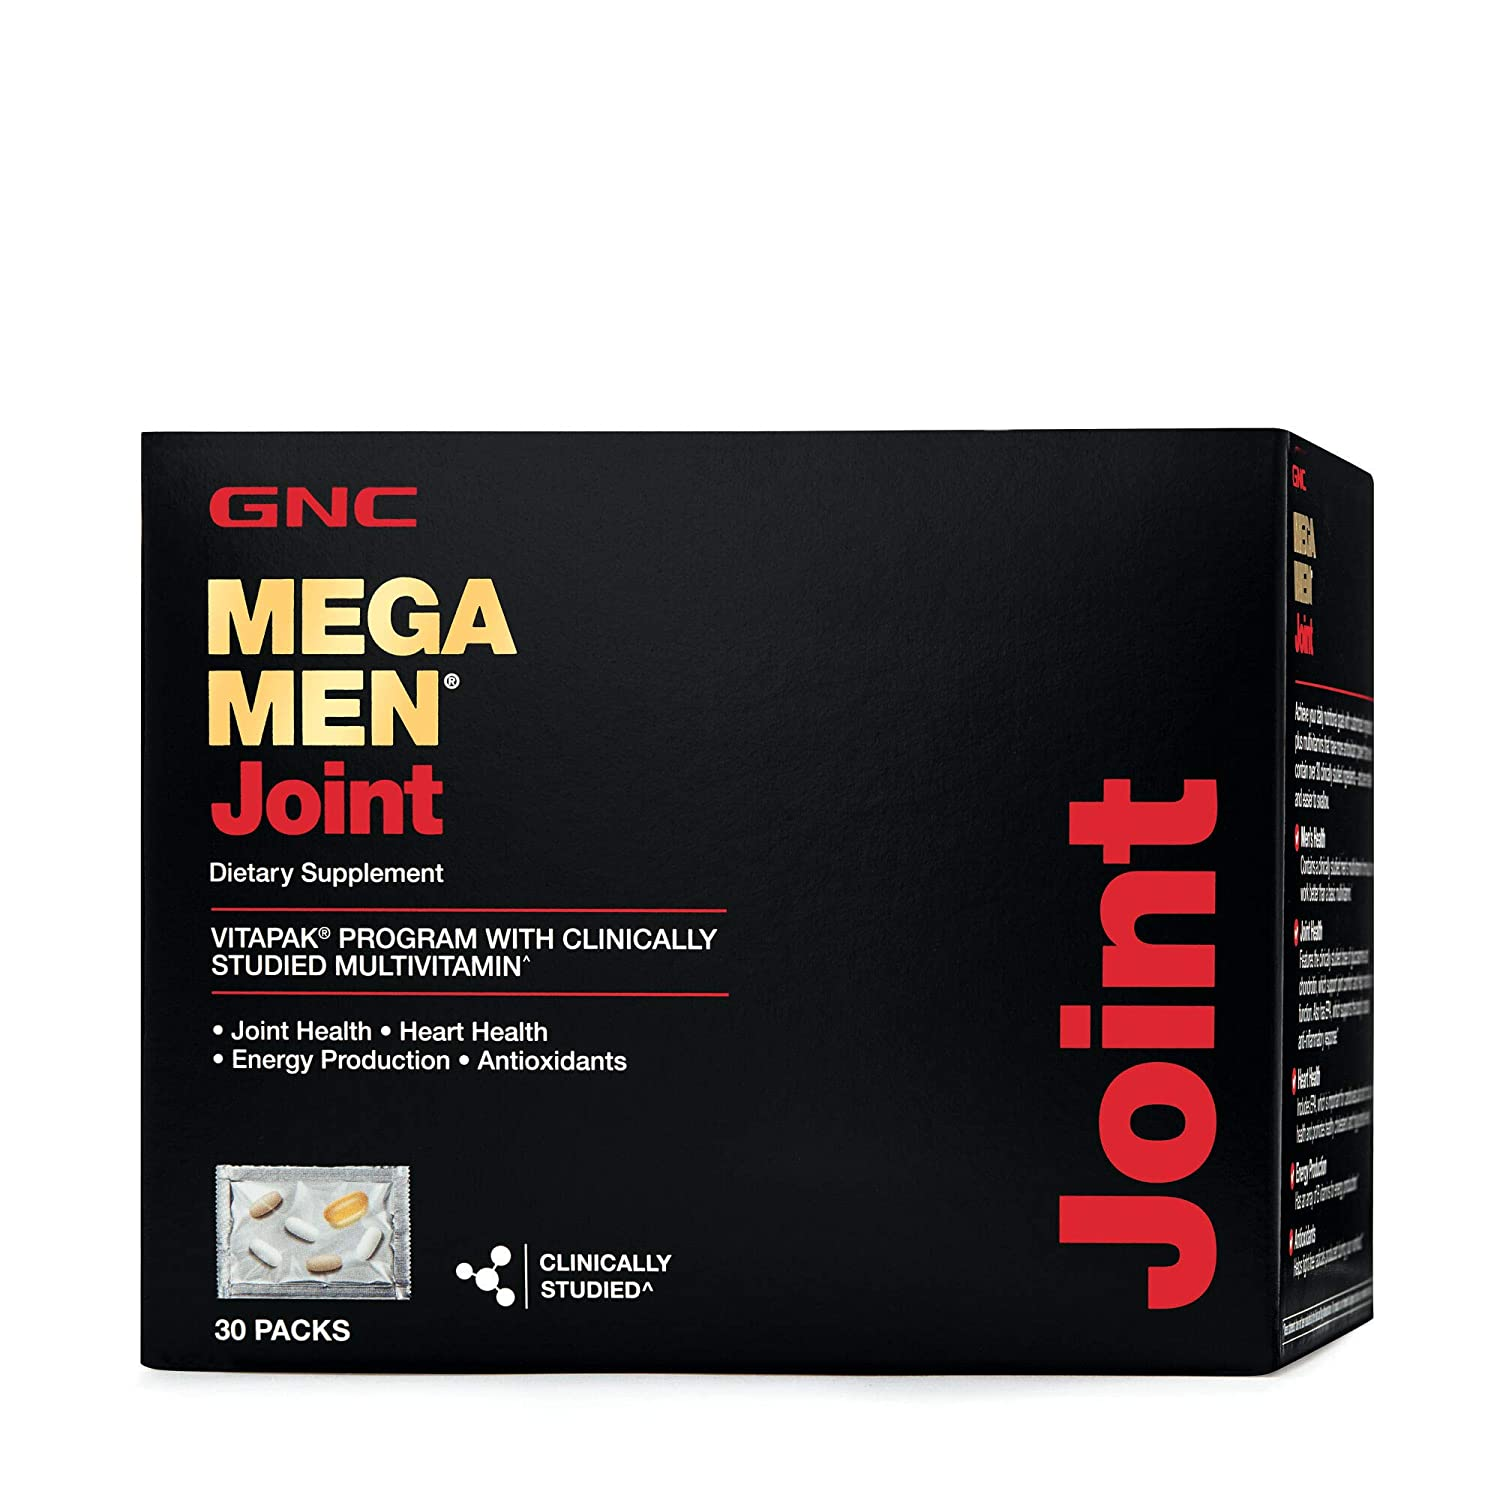 GNC Mega Men Joint Vitapak Program 30 pks